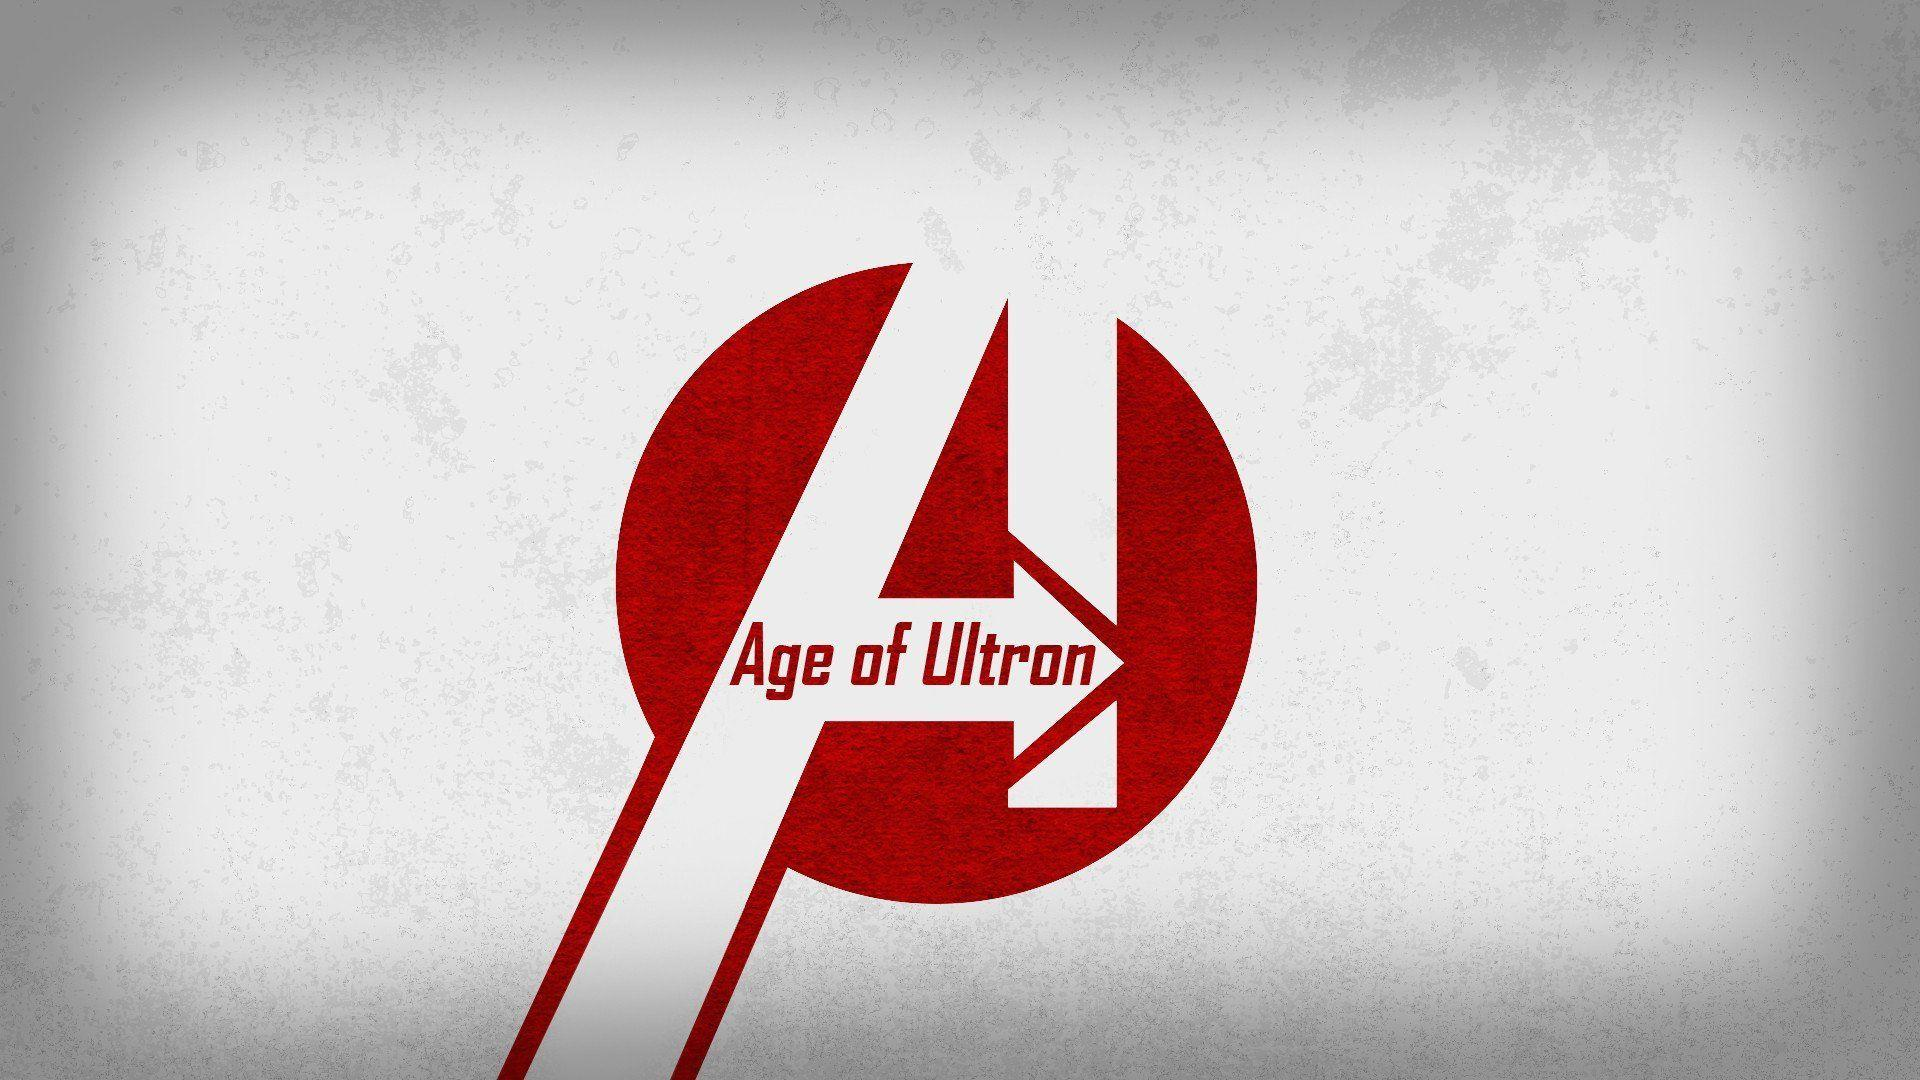 Avengers Marvel Age of Ultron Logo wallpapers